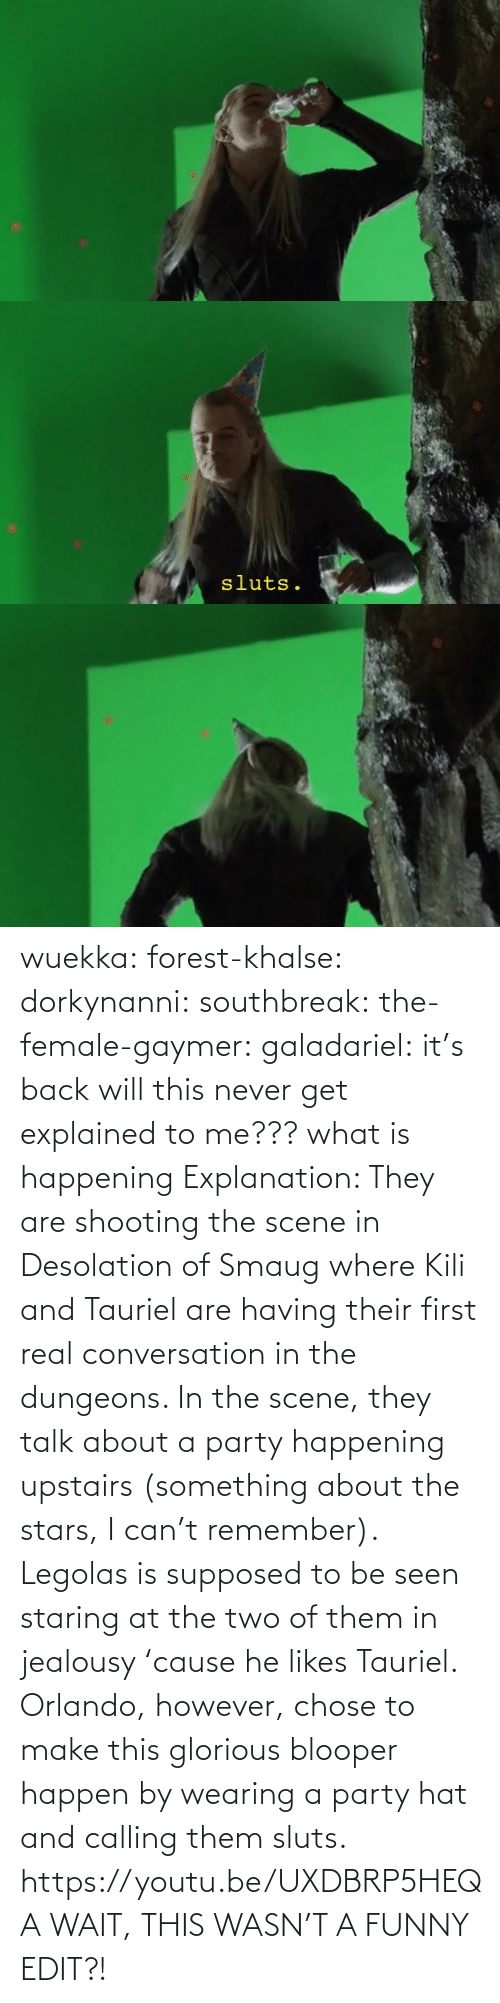 Glorious: wuekka: forest-khalse:   dorkynanni:  southbreak:   the-female-gaymer:   galadariel:  it's back   will this never get explained to me???    what is happening    Explanation:  They are shooting the scene in Desolation of Smaug where Kili and Tauriel are having their first real conversation in the dungeons.  In the scene, they talk about a party happening upstairs (something about the stars, I can't remember). Legolas is supposed to be seen staring at the two of them in jealousy 'cause he likes Tauriel.  Orlando, however, chose to make this glorious blooper happen by wearing a party hat and calling them sluts.    https://youtu.be/UXDBRP5HEQA    WAIT, THIS WASN'T A FUNNY EDIT?!